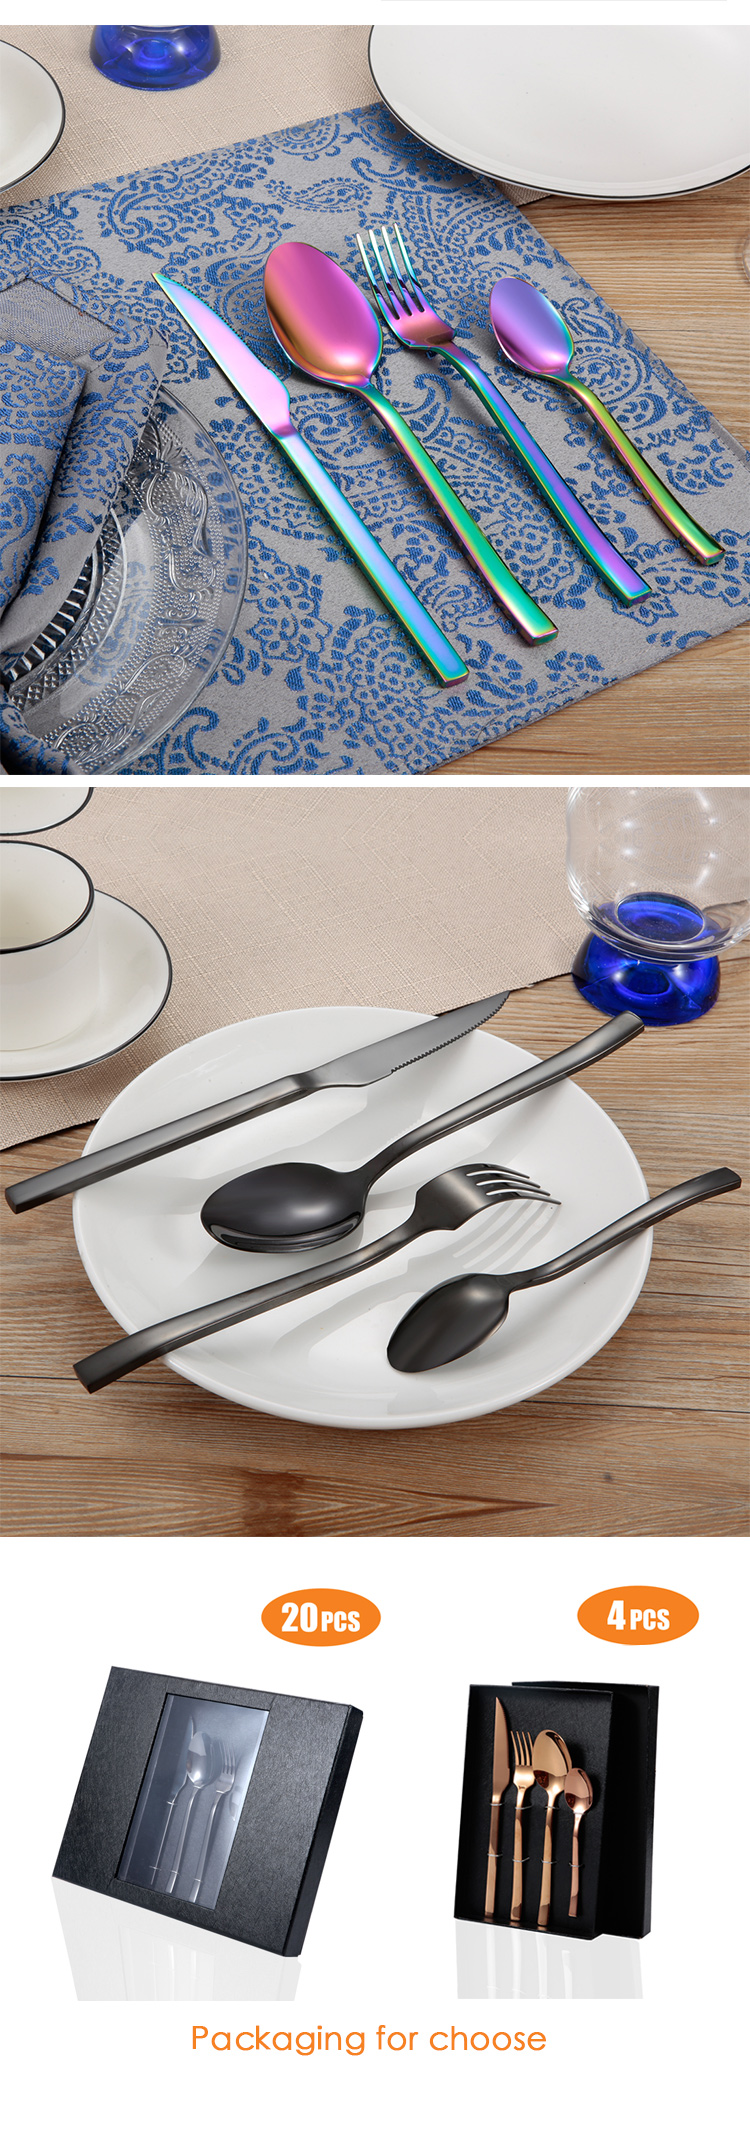 gold thickness cutlery